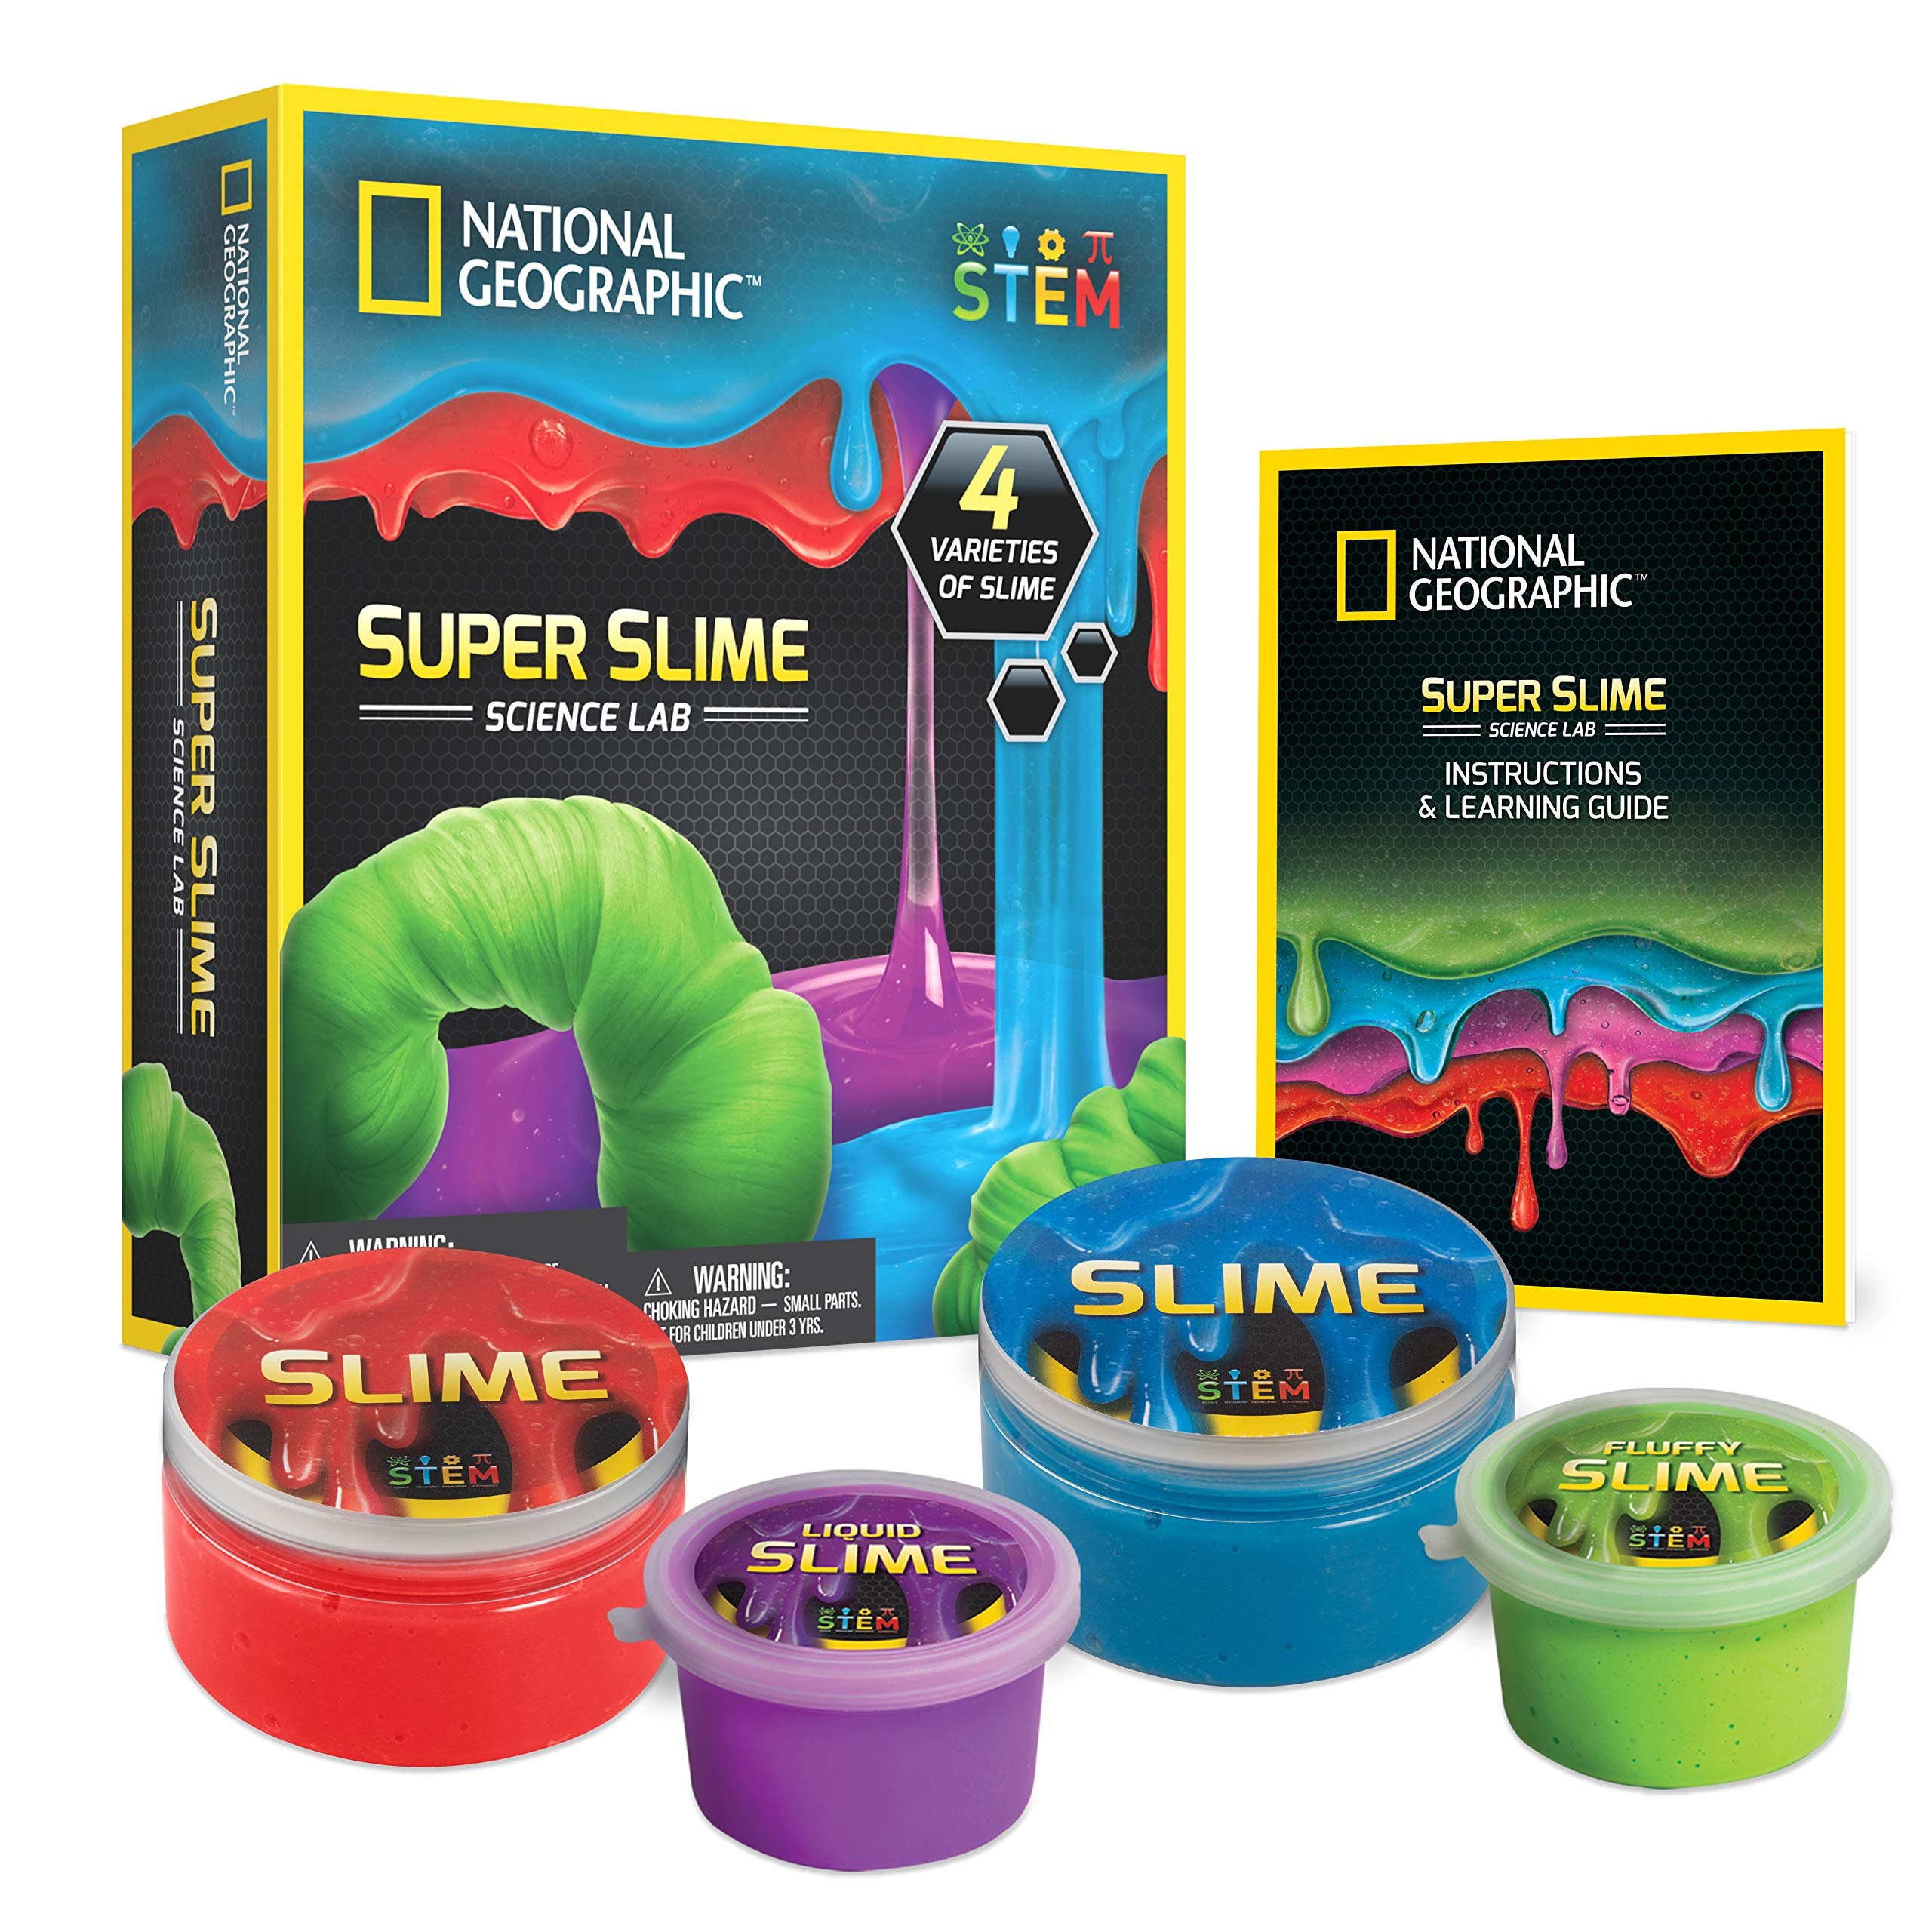 NATIONAL GEOGRAPHIC Super Science Lab - Slime Kit Includes Green Fluffy Slime, DIY Blue & Red Glow-in-The-Dark Slime, Purple Liquid Slime, Containers, Great Stem Toy for Boys & Girls